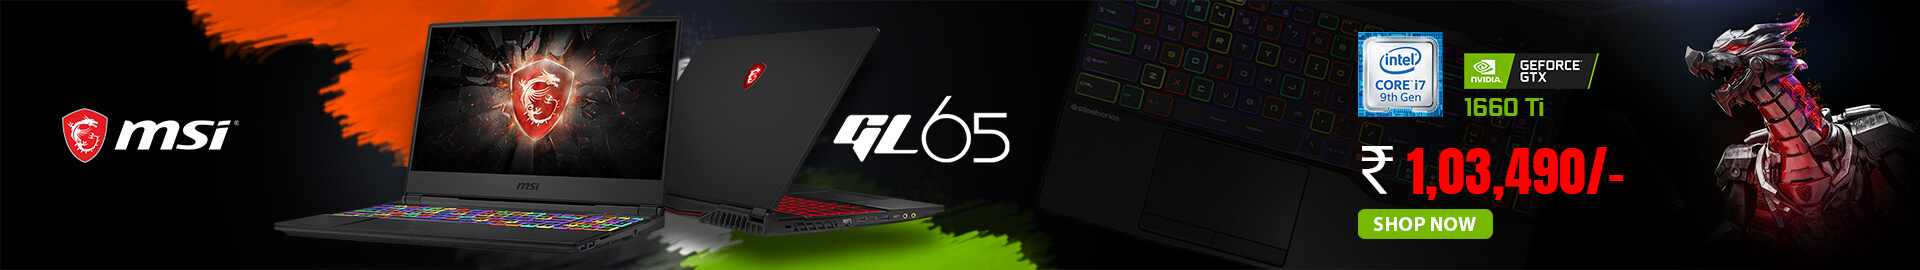 Buy Msi GL65 at Lowest Price In India - mdcomputers.in